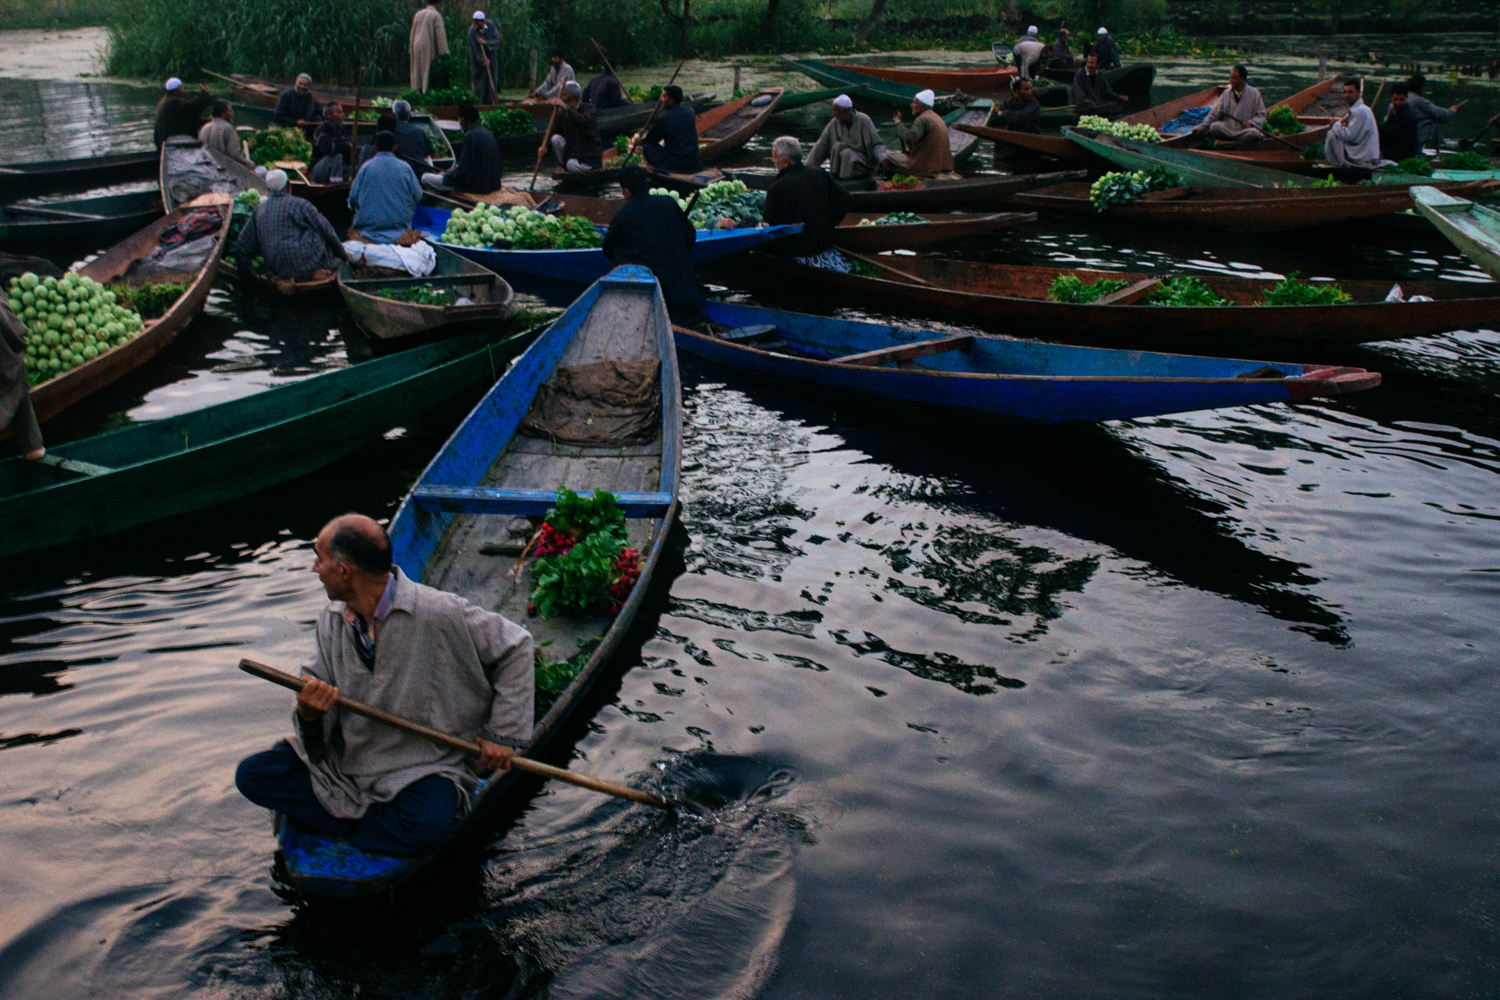 Vendors ply their trade at the floating market.